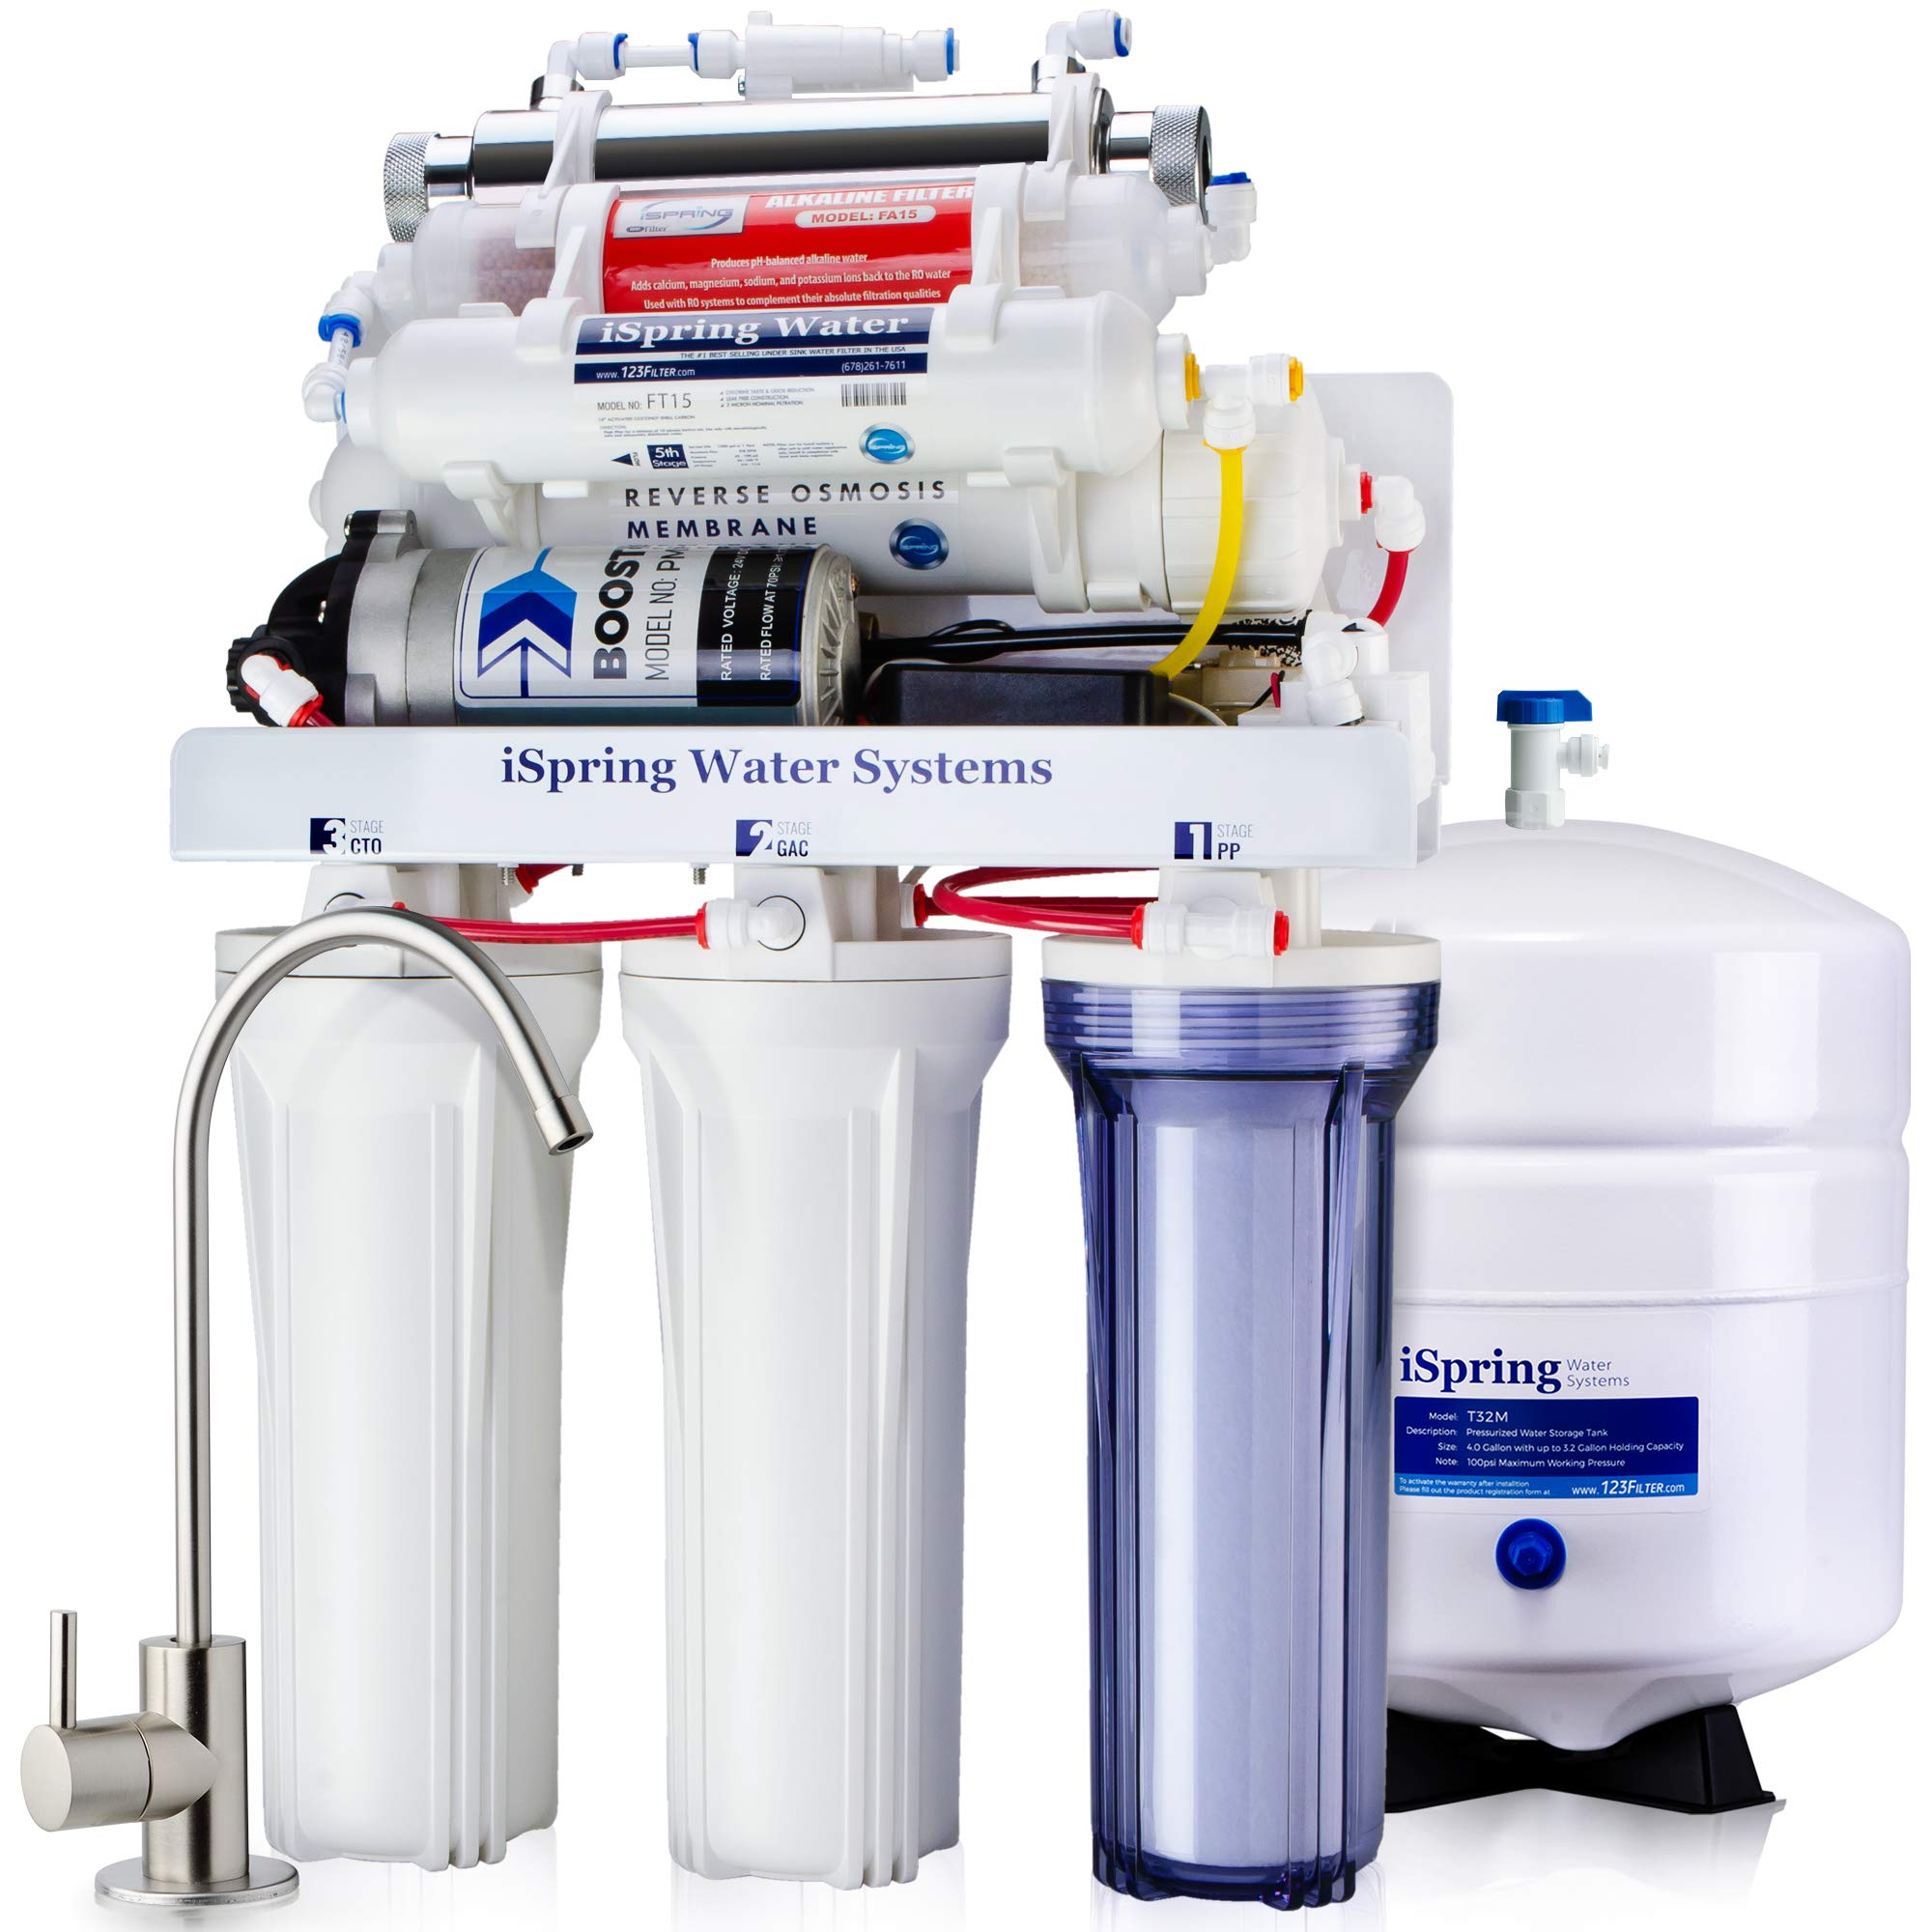 iSpring RCC1UP-AK 7 Stage 100 GPD Maximum Performance UnderSink Reverse Osmosis Drinking Water Filtration System With Booster Pump, Alkaline Ph+ Remineralization Filter And UV Sterilizer, White by iSpring